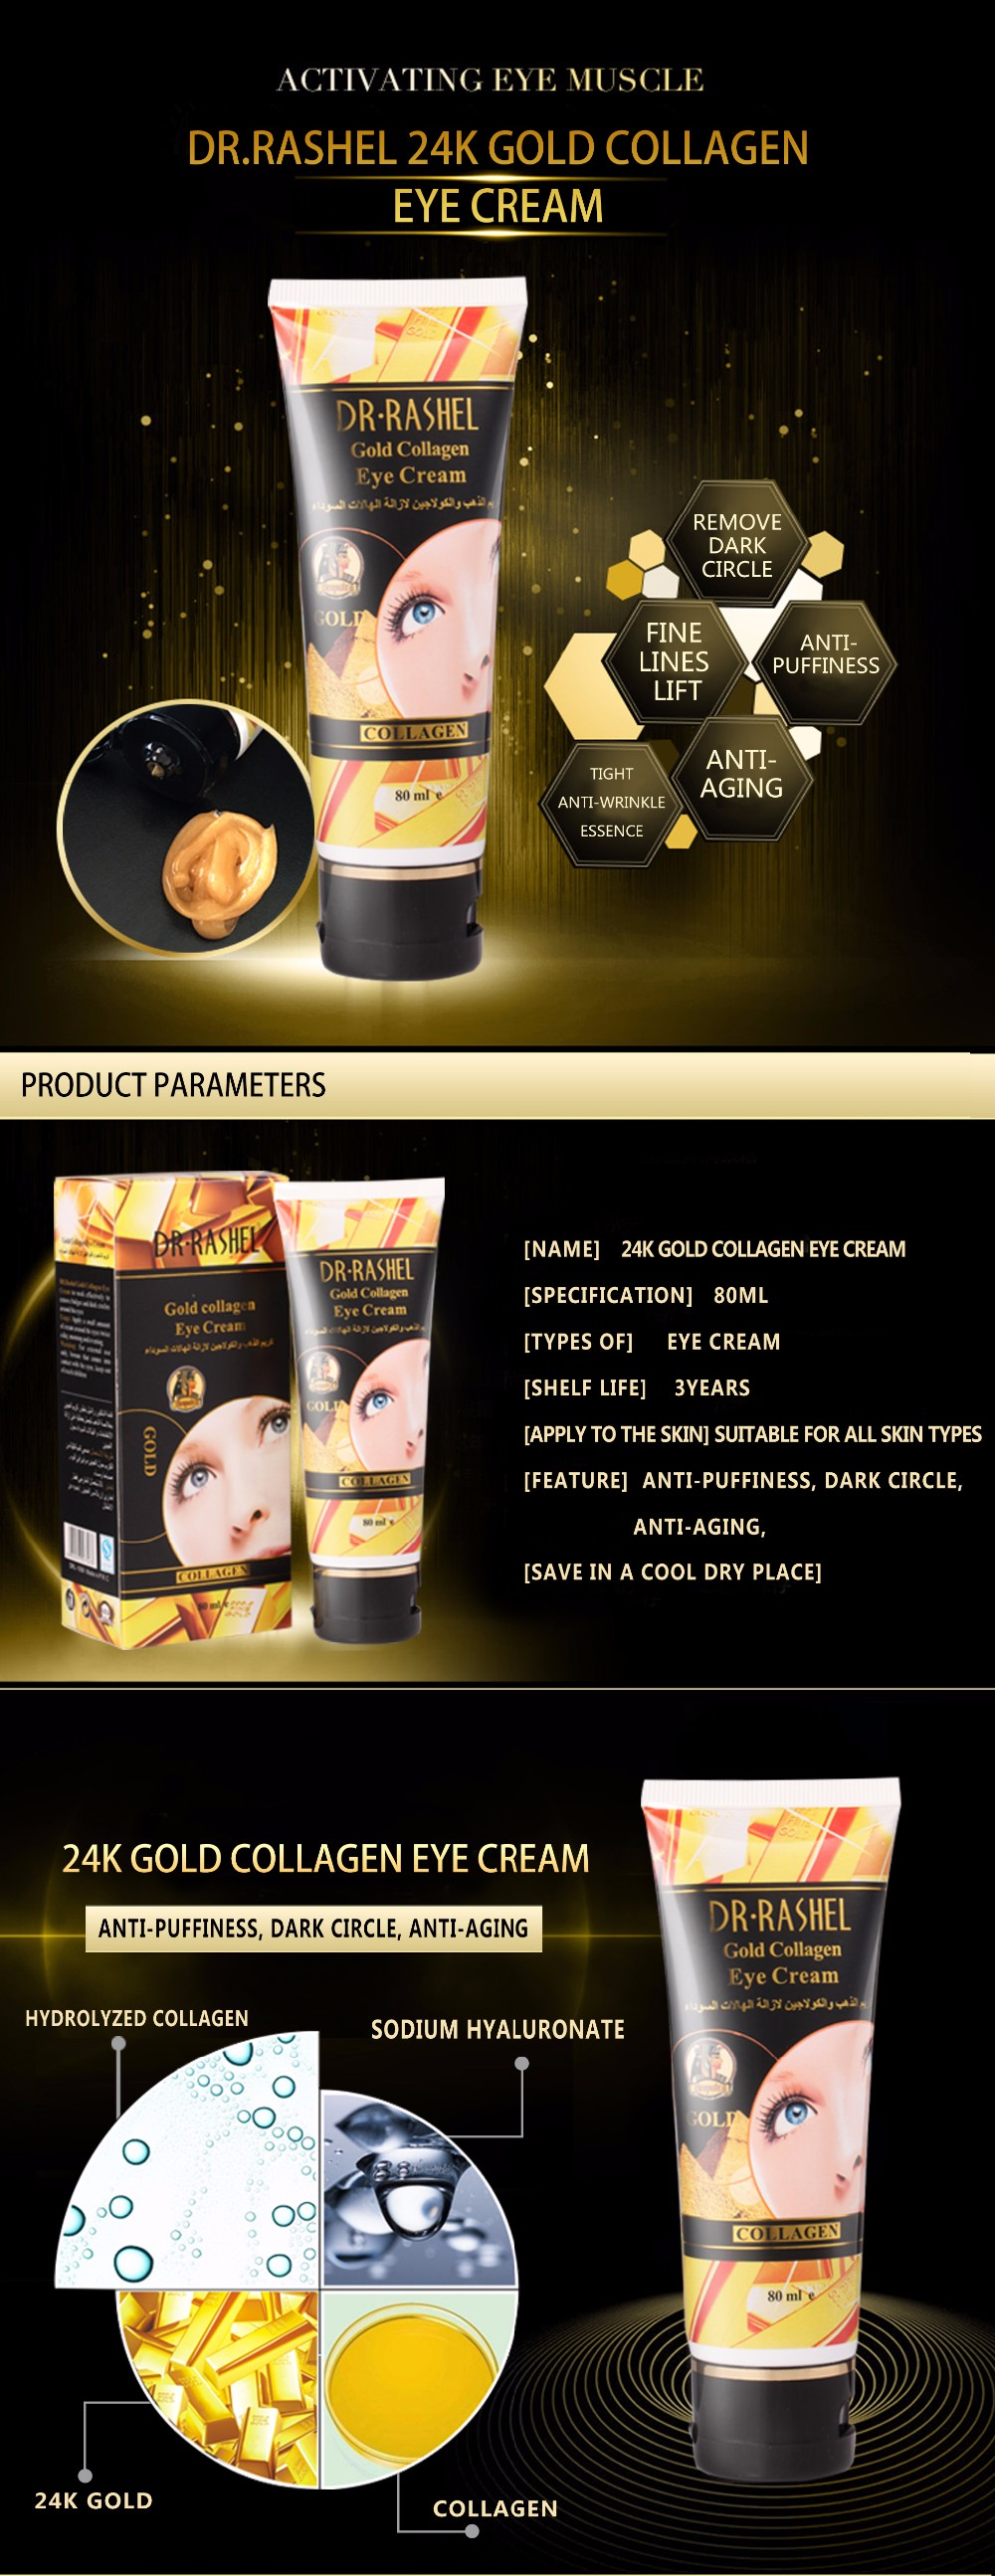 24K Gold Collagen Eye Cream Tight Anti-wrinkle Essence Fine Lines Lift Remove Dark Circle Anti-Puffiness Anti-Aging ageless 2